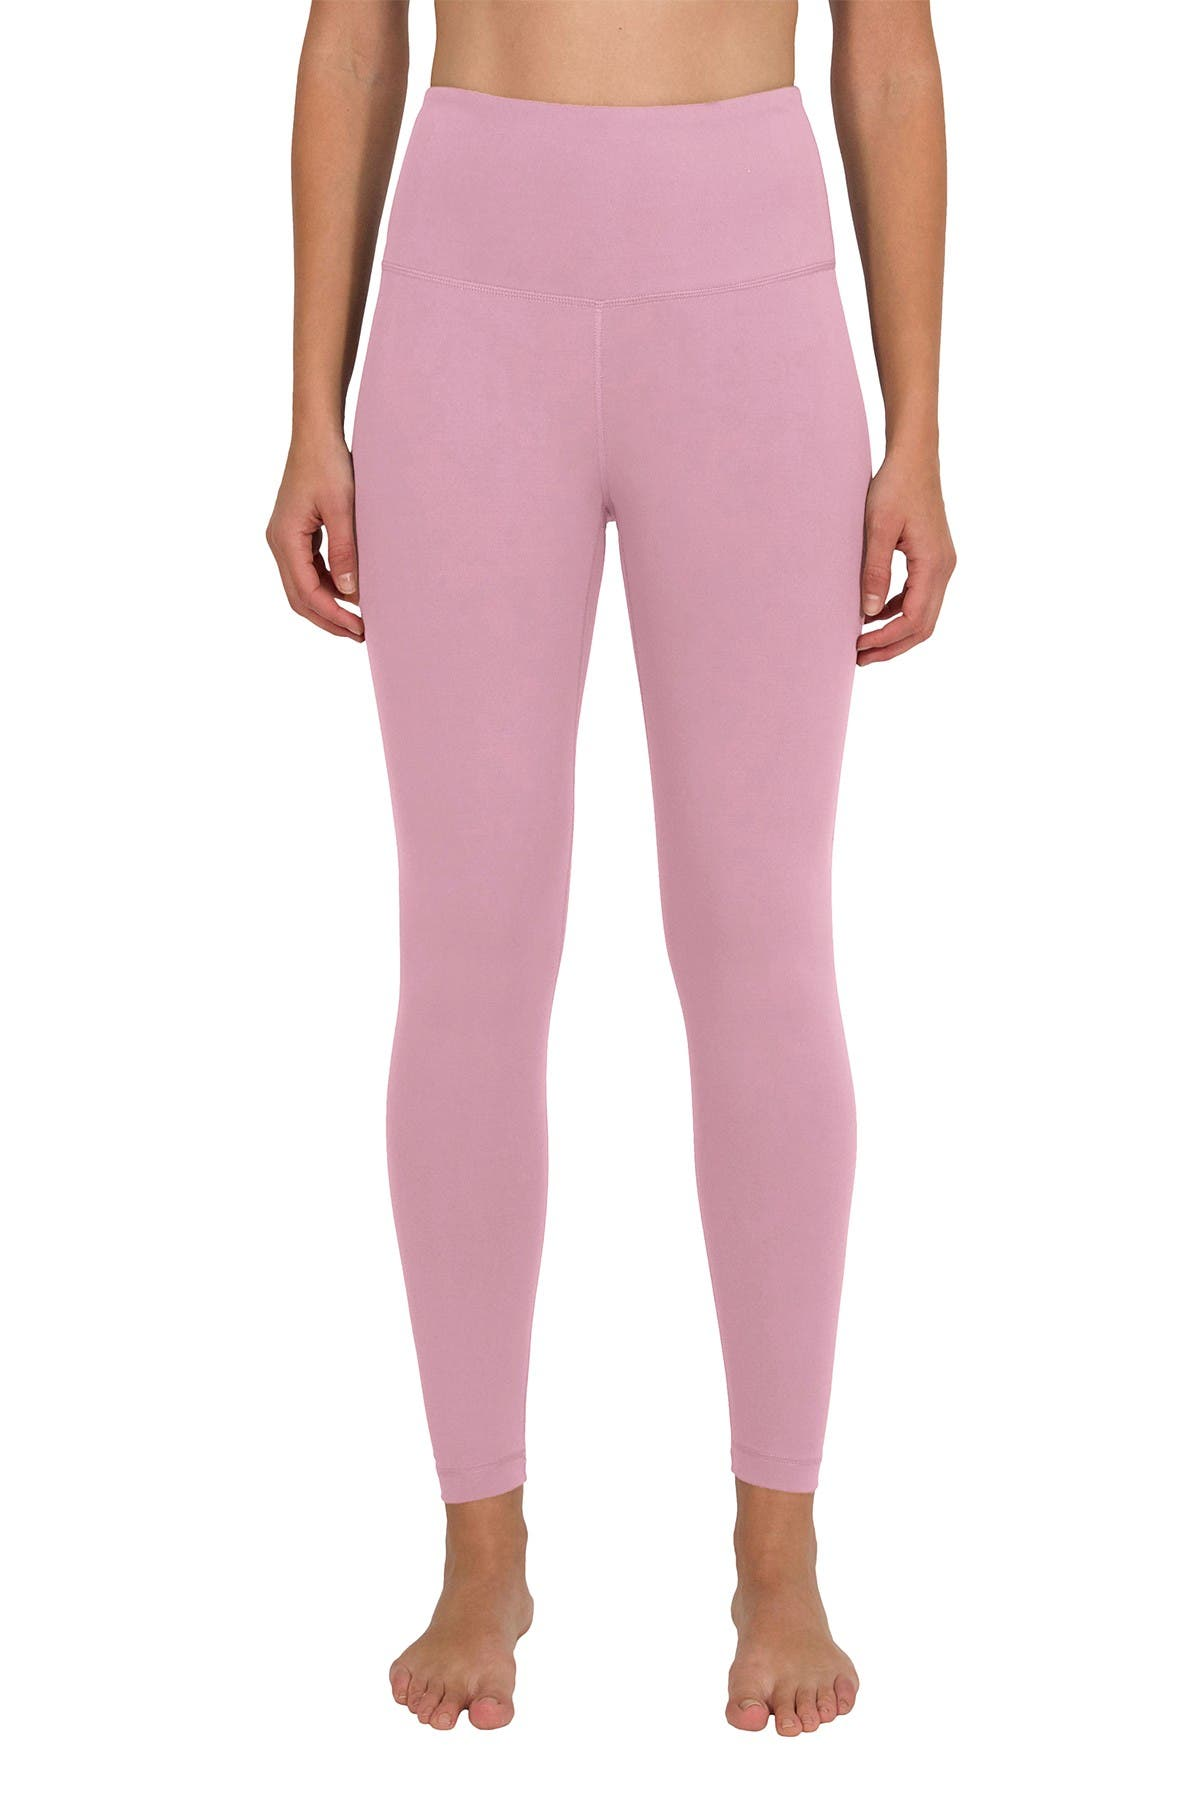 Image of 90 Degree By Reflex Nude Tech High Waist Ankle Leggings